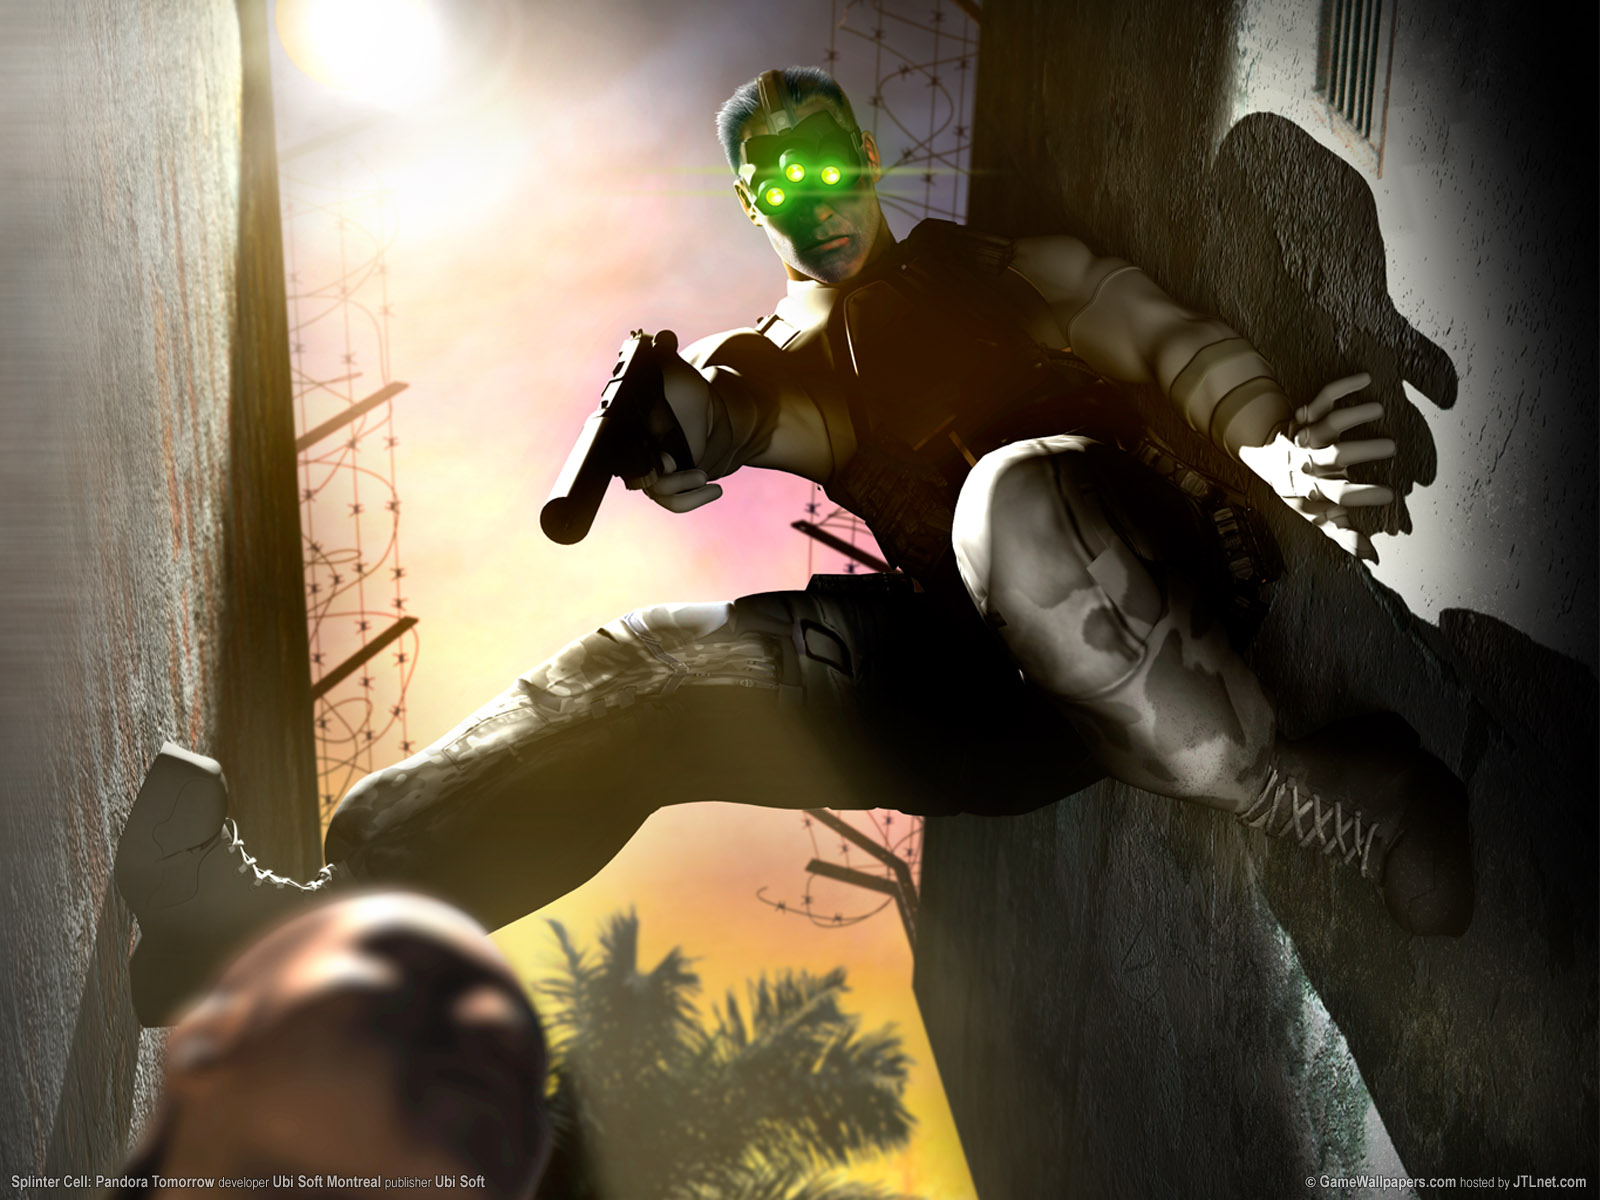 Anime Cry Wallpaper Splinter Cell Pandora Tomorrow Wallpapers Splinter Cell